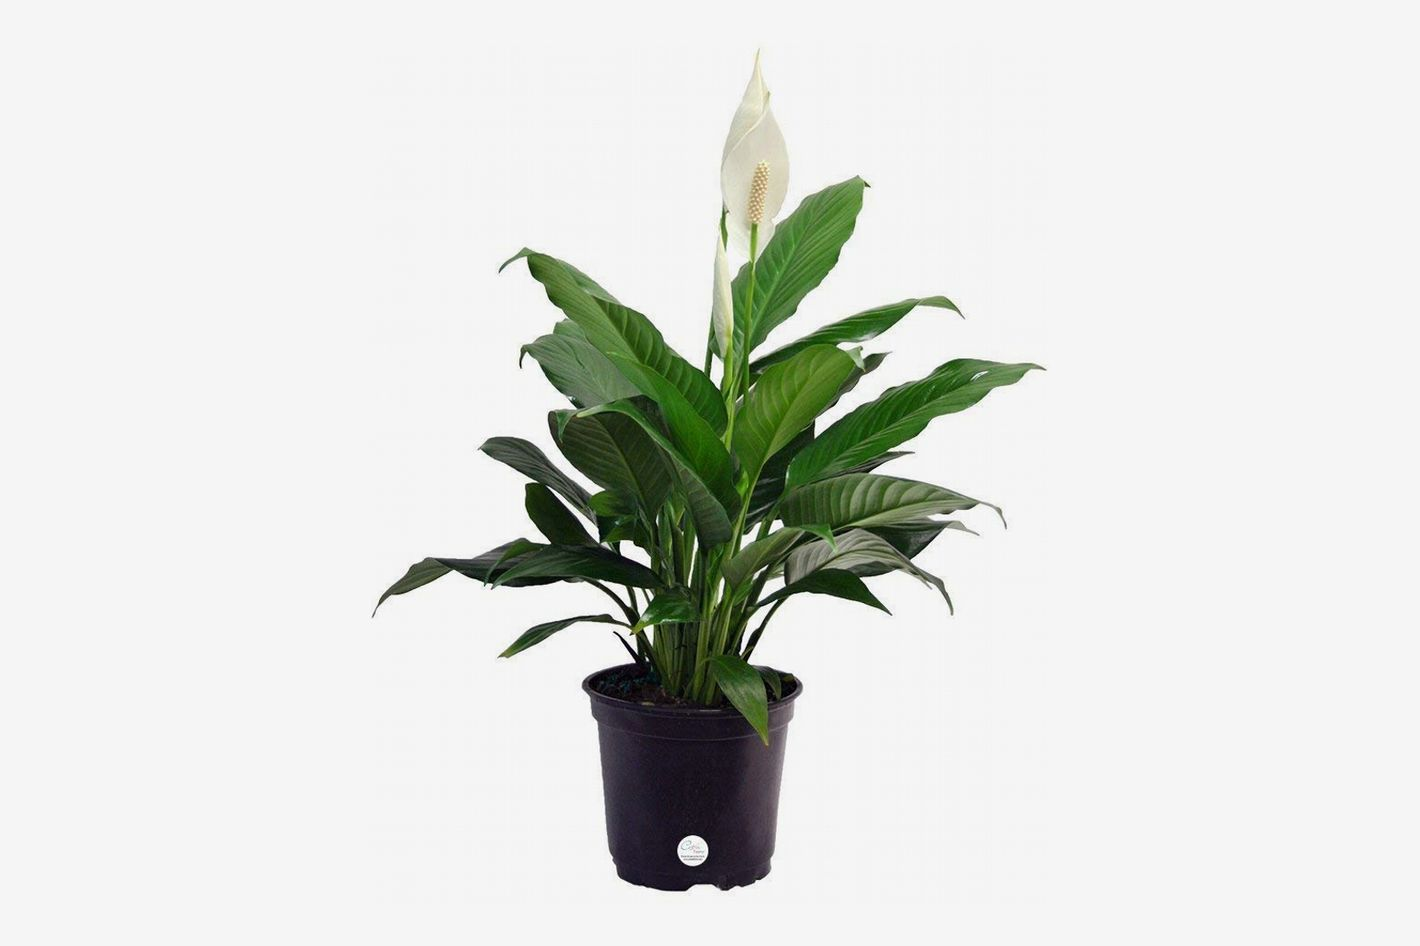 The 6 Best Plants for Cubicles, According to Plant Experts Peace Lily House Plant Html on pineapple plant house plant, dragon plant, black gold lily plant, zamiifolia house plant, croton house plant, peace lily plant benefits, problems with peace lily plant, artificial bamboo house plant, black bamboo potted plant, peace lily family plant, peace lily potted plant, classic peace lily plant, chinese evergreen house plant, marginata house plant, weeping fig house plant, peace plant brown leaves, holly house plant, white and green leaves house plant, funeral peace lily plant, droopy peace lily plant,